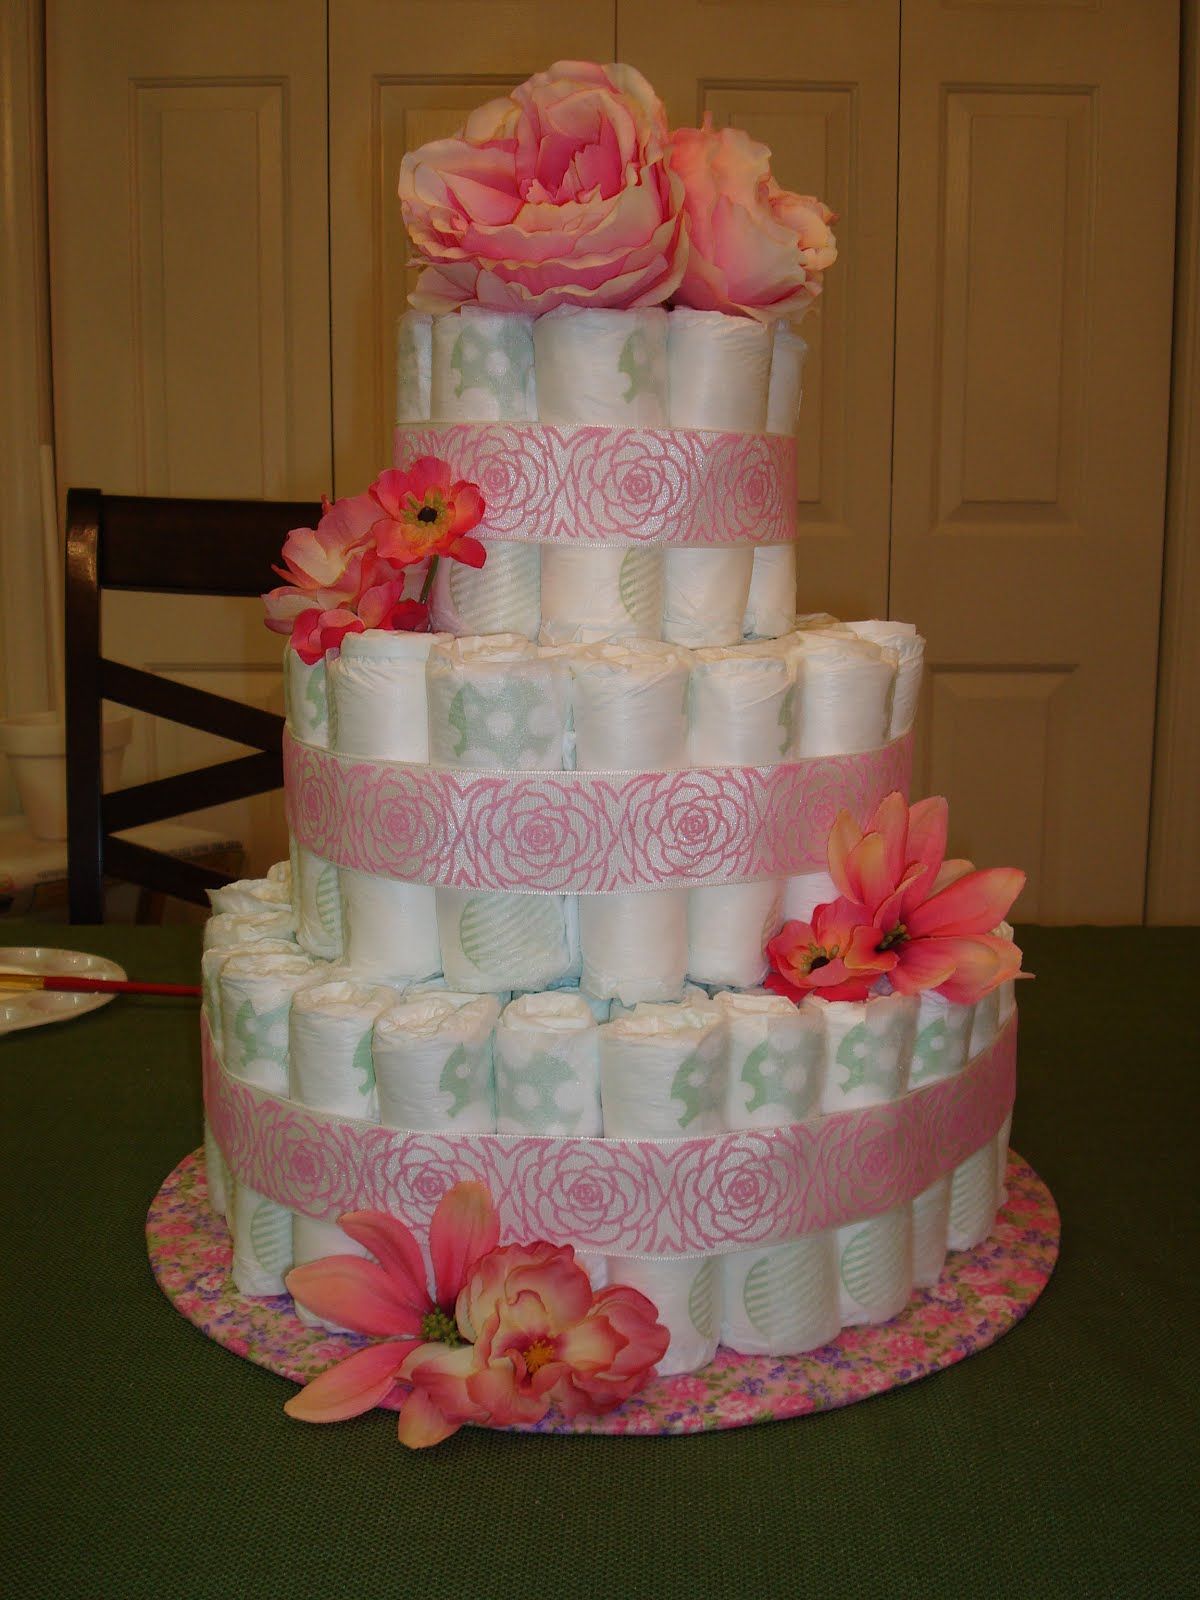 A Day In The Life Of Preachmans Wife Diaper Cake Tutorial